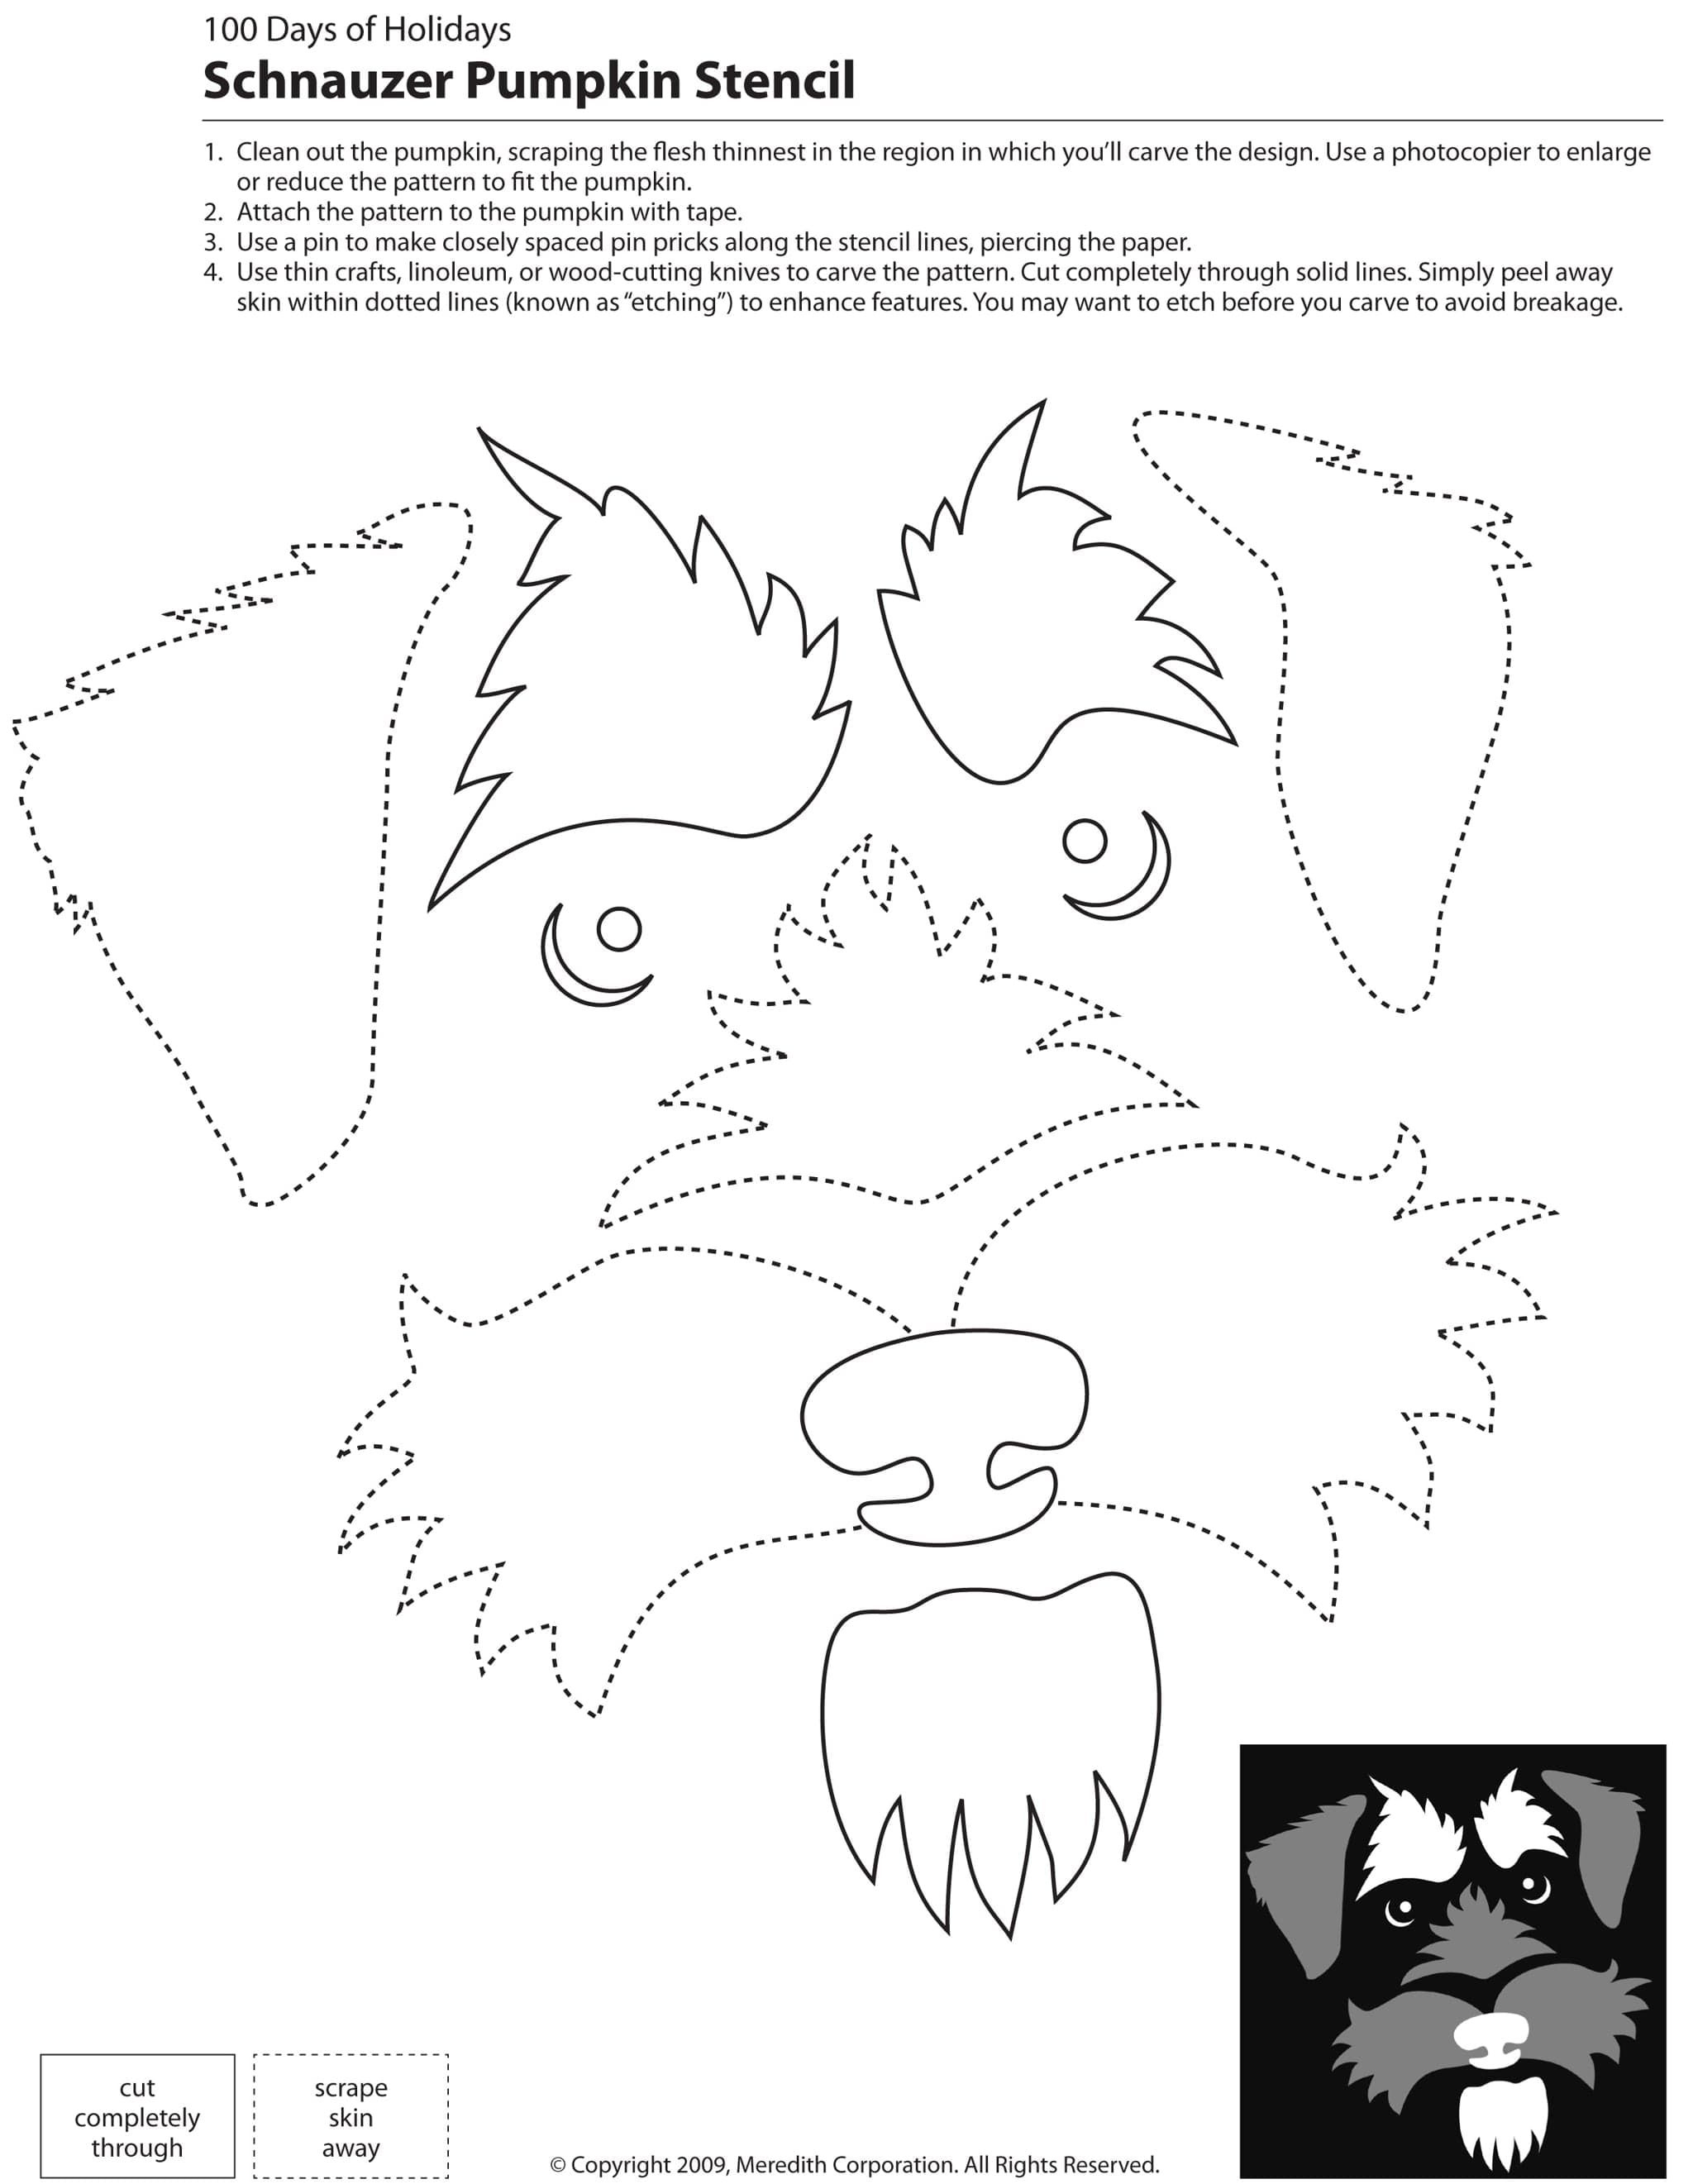 22 Free Pumpkin Carving Dog Stencils (Breed Specific) | Halloween - Free Printable Pumpkin Carving Templates Dog